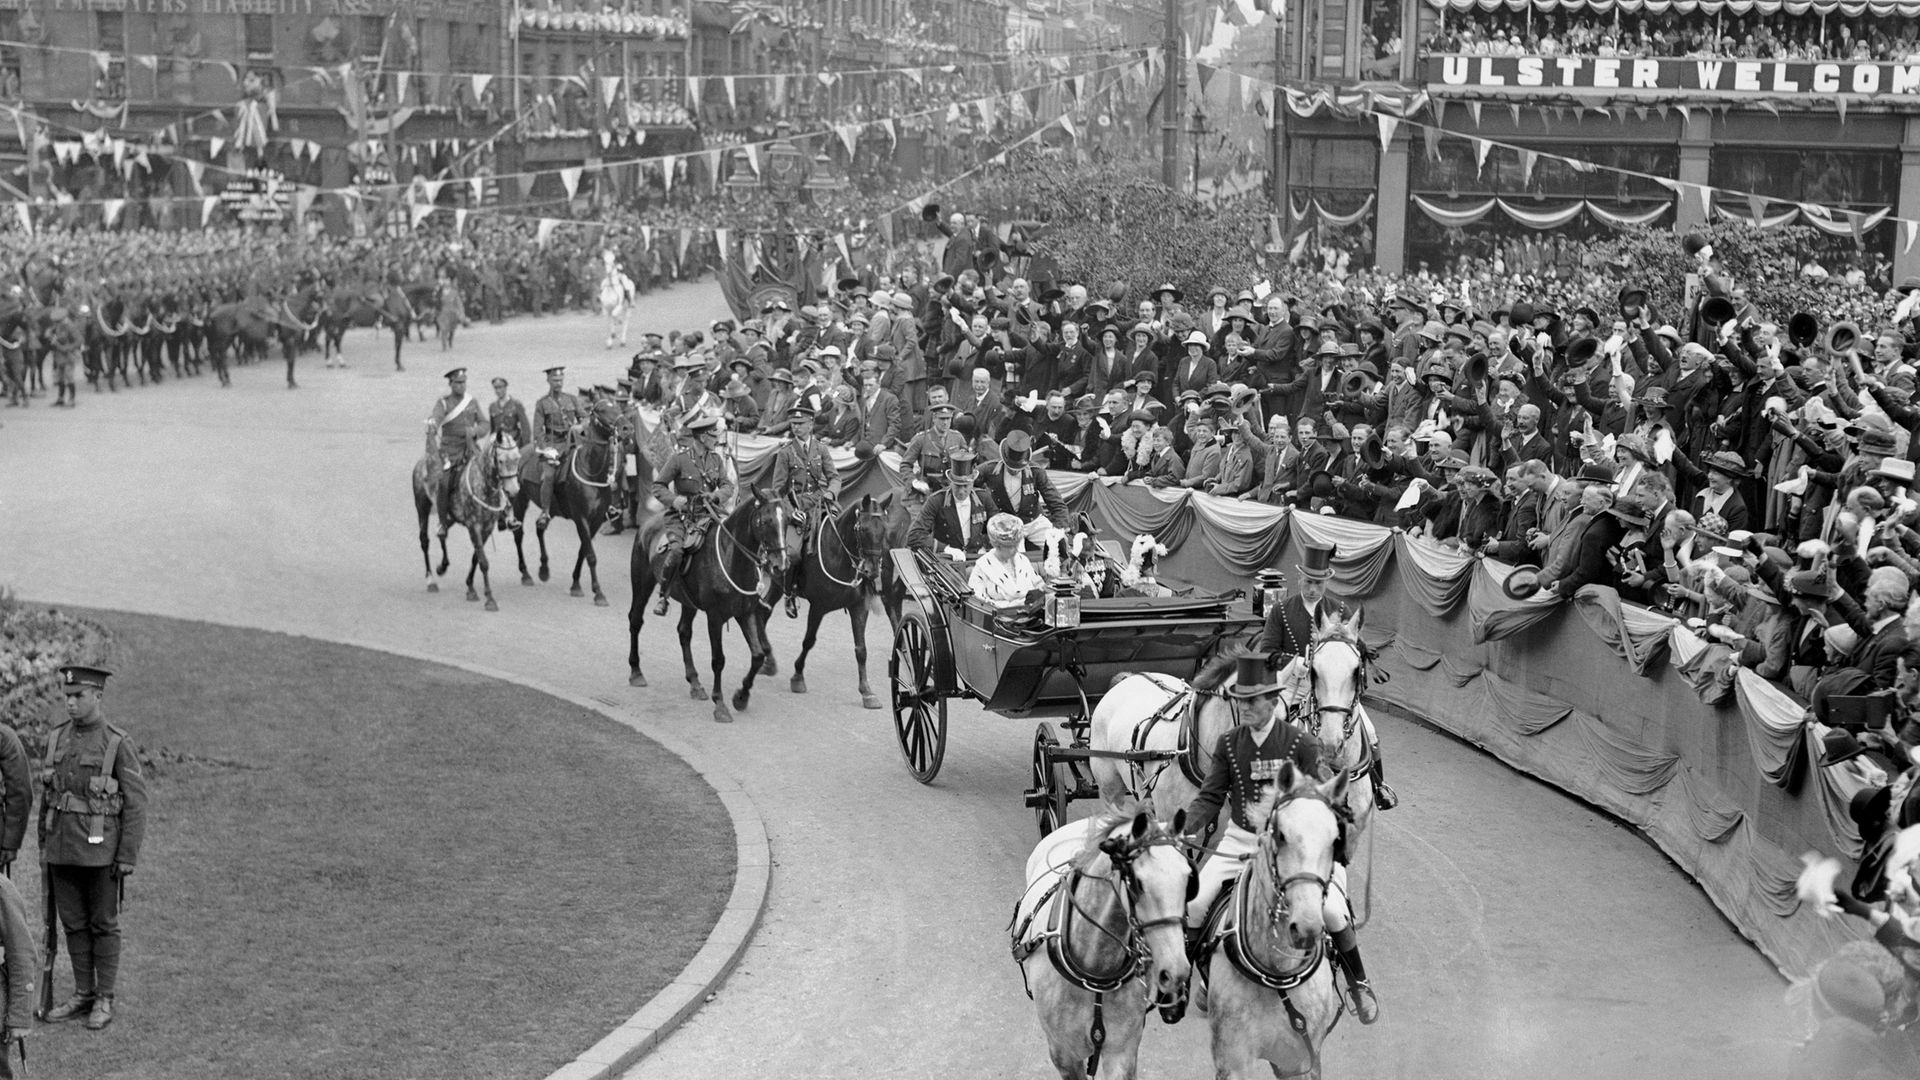 NI'S LONG AND WINDING ROAD: King George V and Queen Mary arrive for the opening of the parliament of Northern Ireland in Belfast, on June 23 1921 - Credit: Mirrorpix via Getty Images